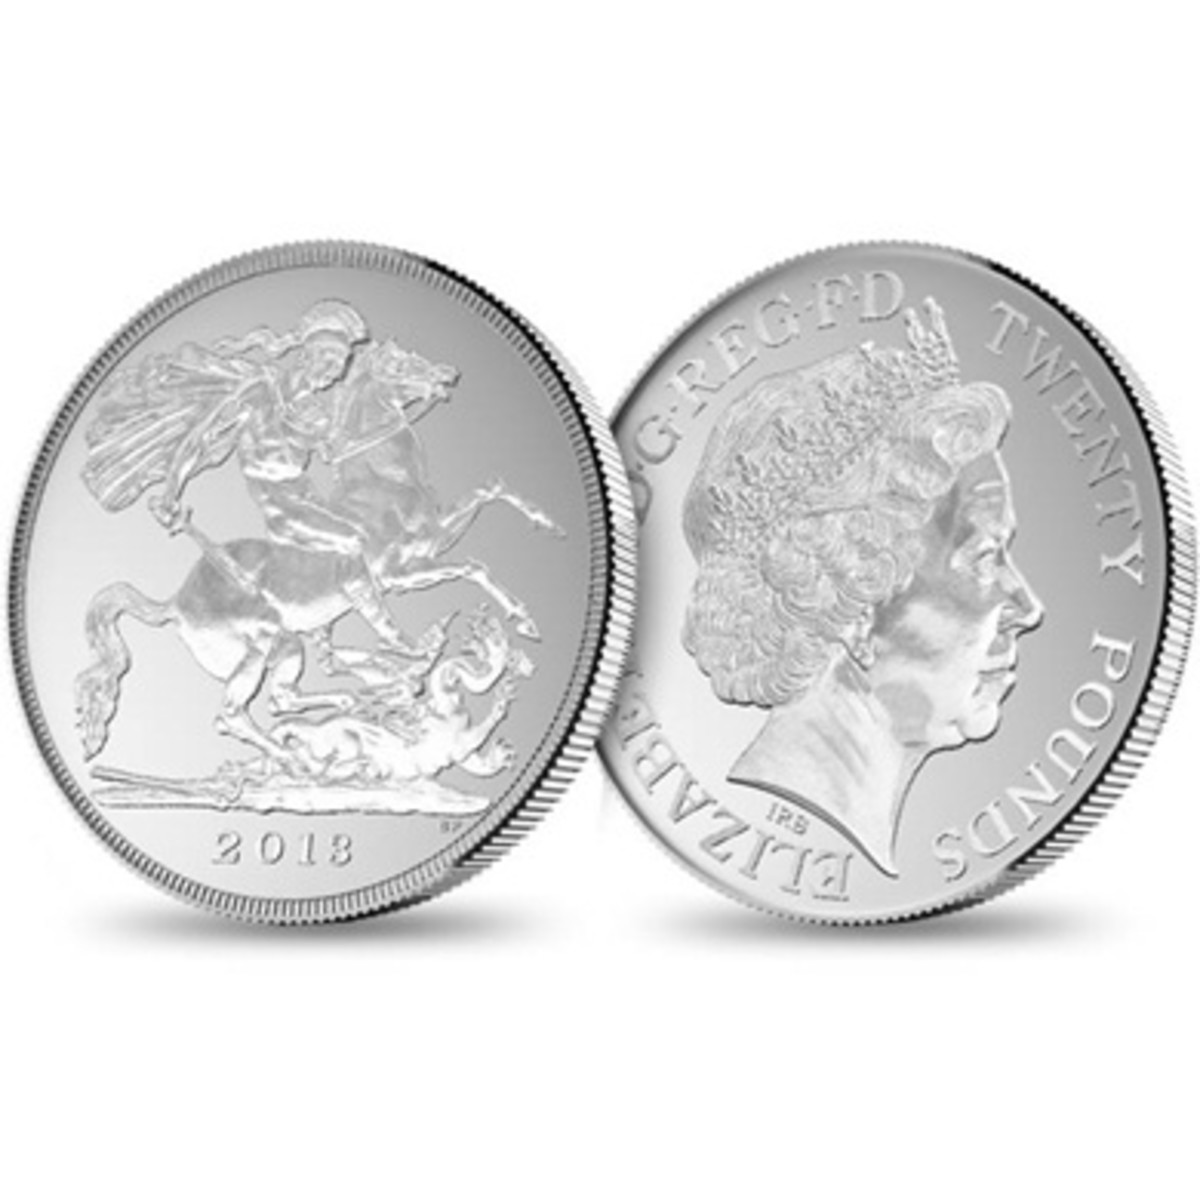 New £20 sterling coin being issued October 2013